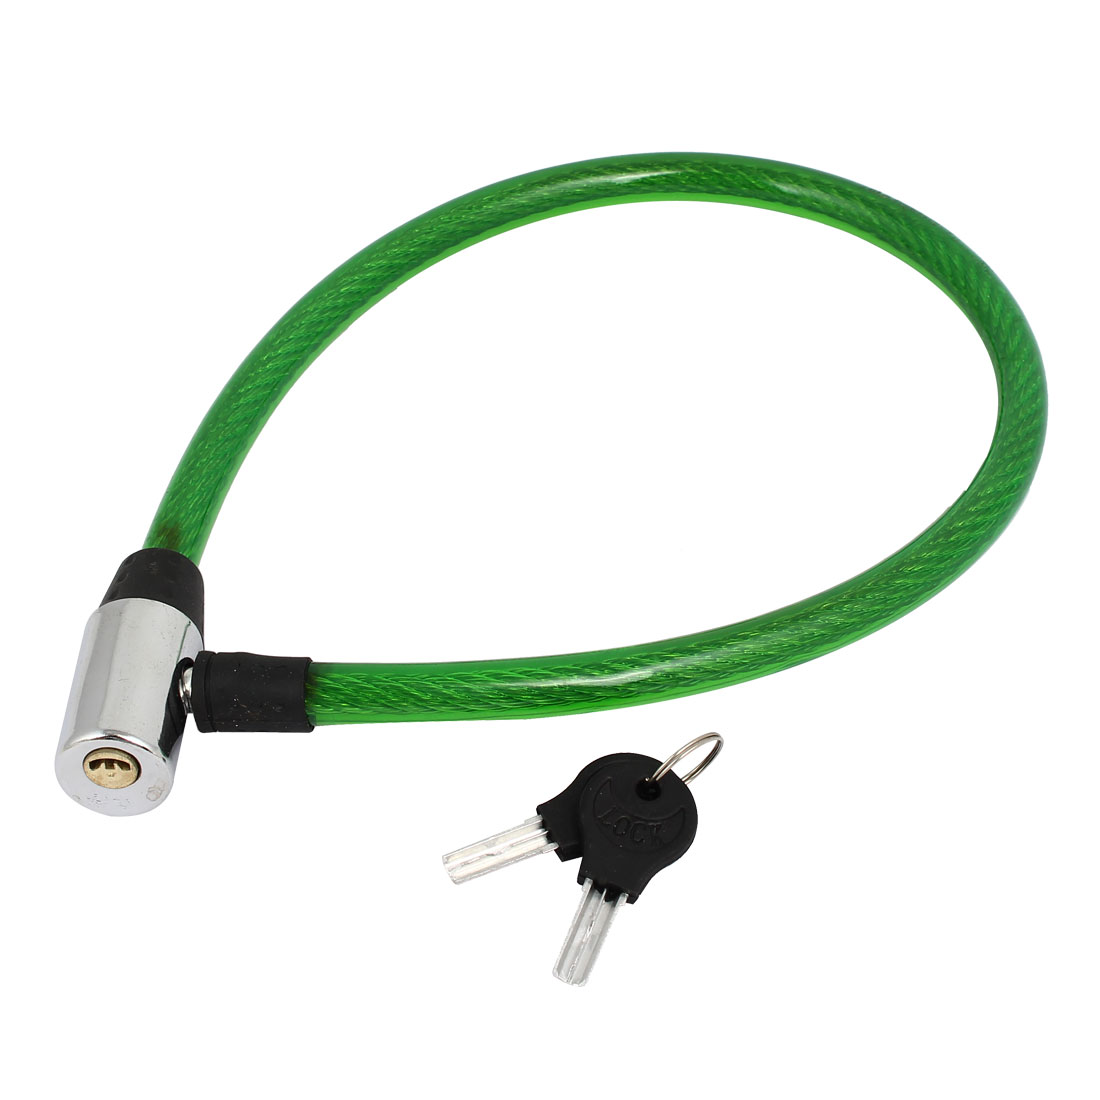 Bike Bicycle Motorcycle Plastic Coated Security Cable Lock 63cm Length Green